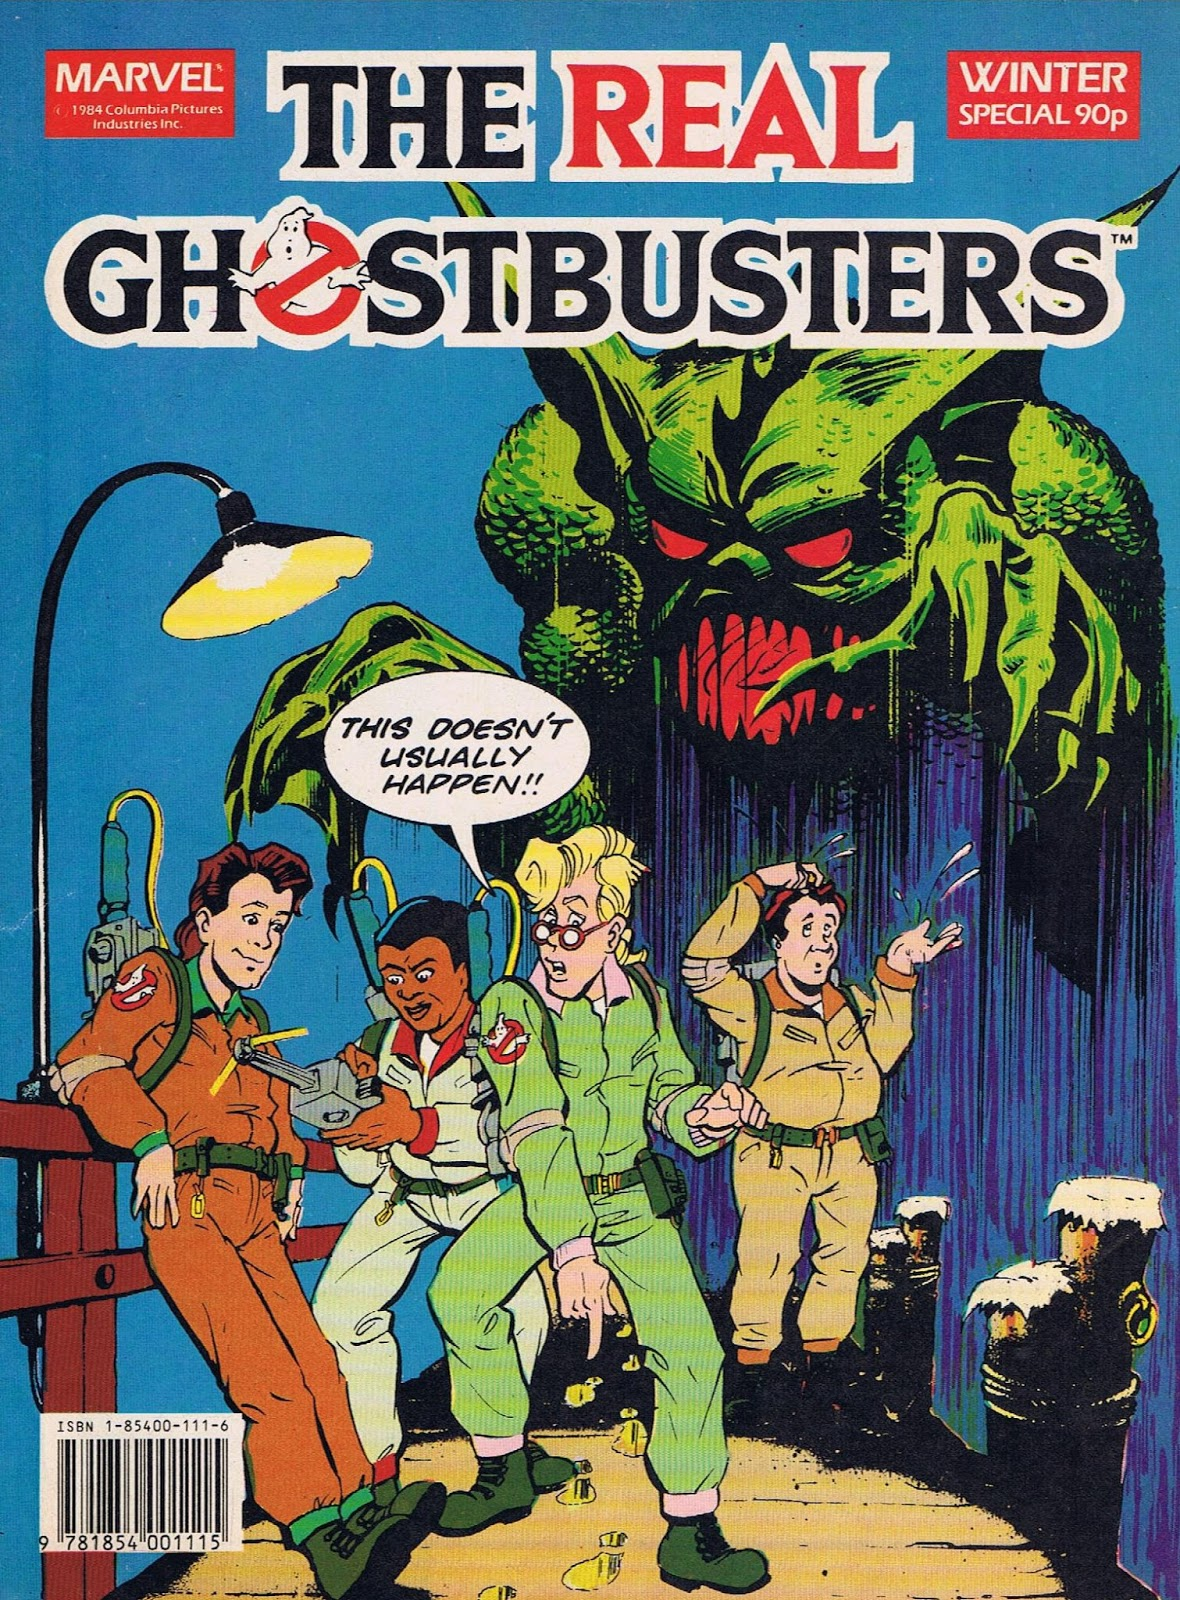 The Real Ghostbusters comic book.